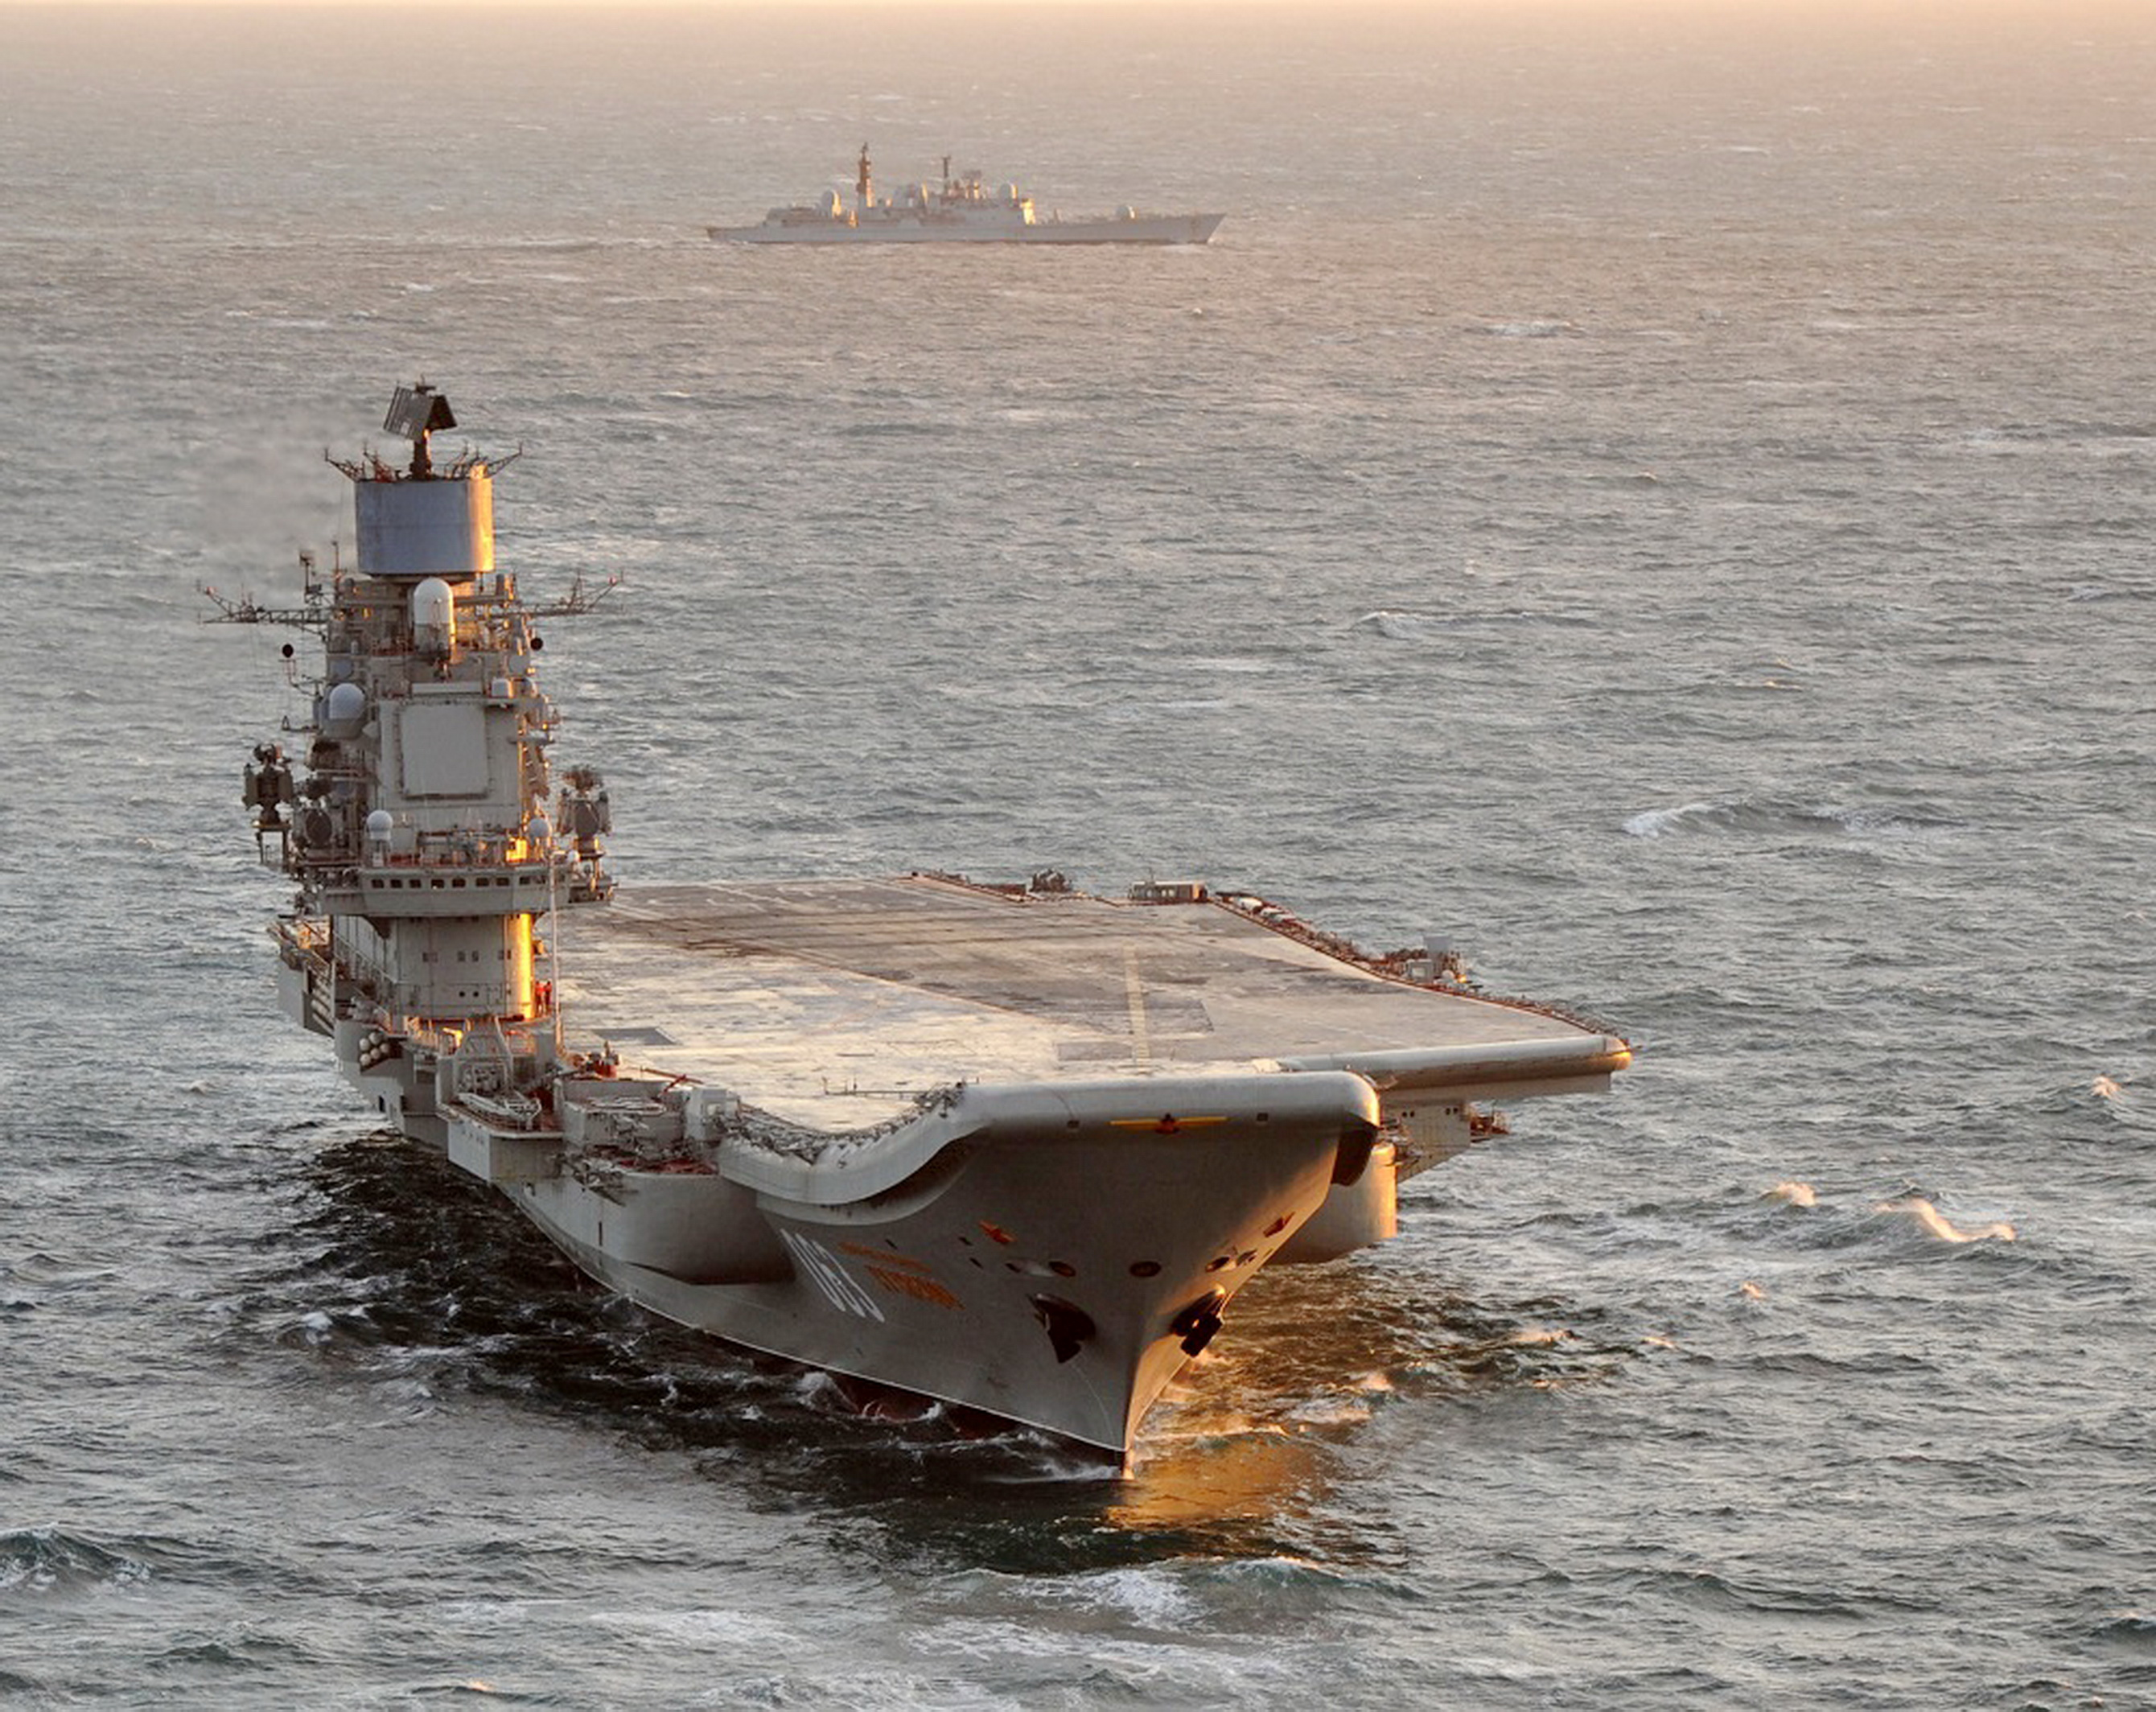 Aircraft Carrier Admiral Kuznetsov: News #2 - Page 2 29-6220929-admiral-kuznetsov-shadowed-by-the-destroyer-hms-york-